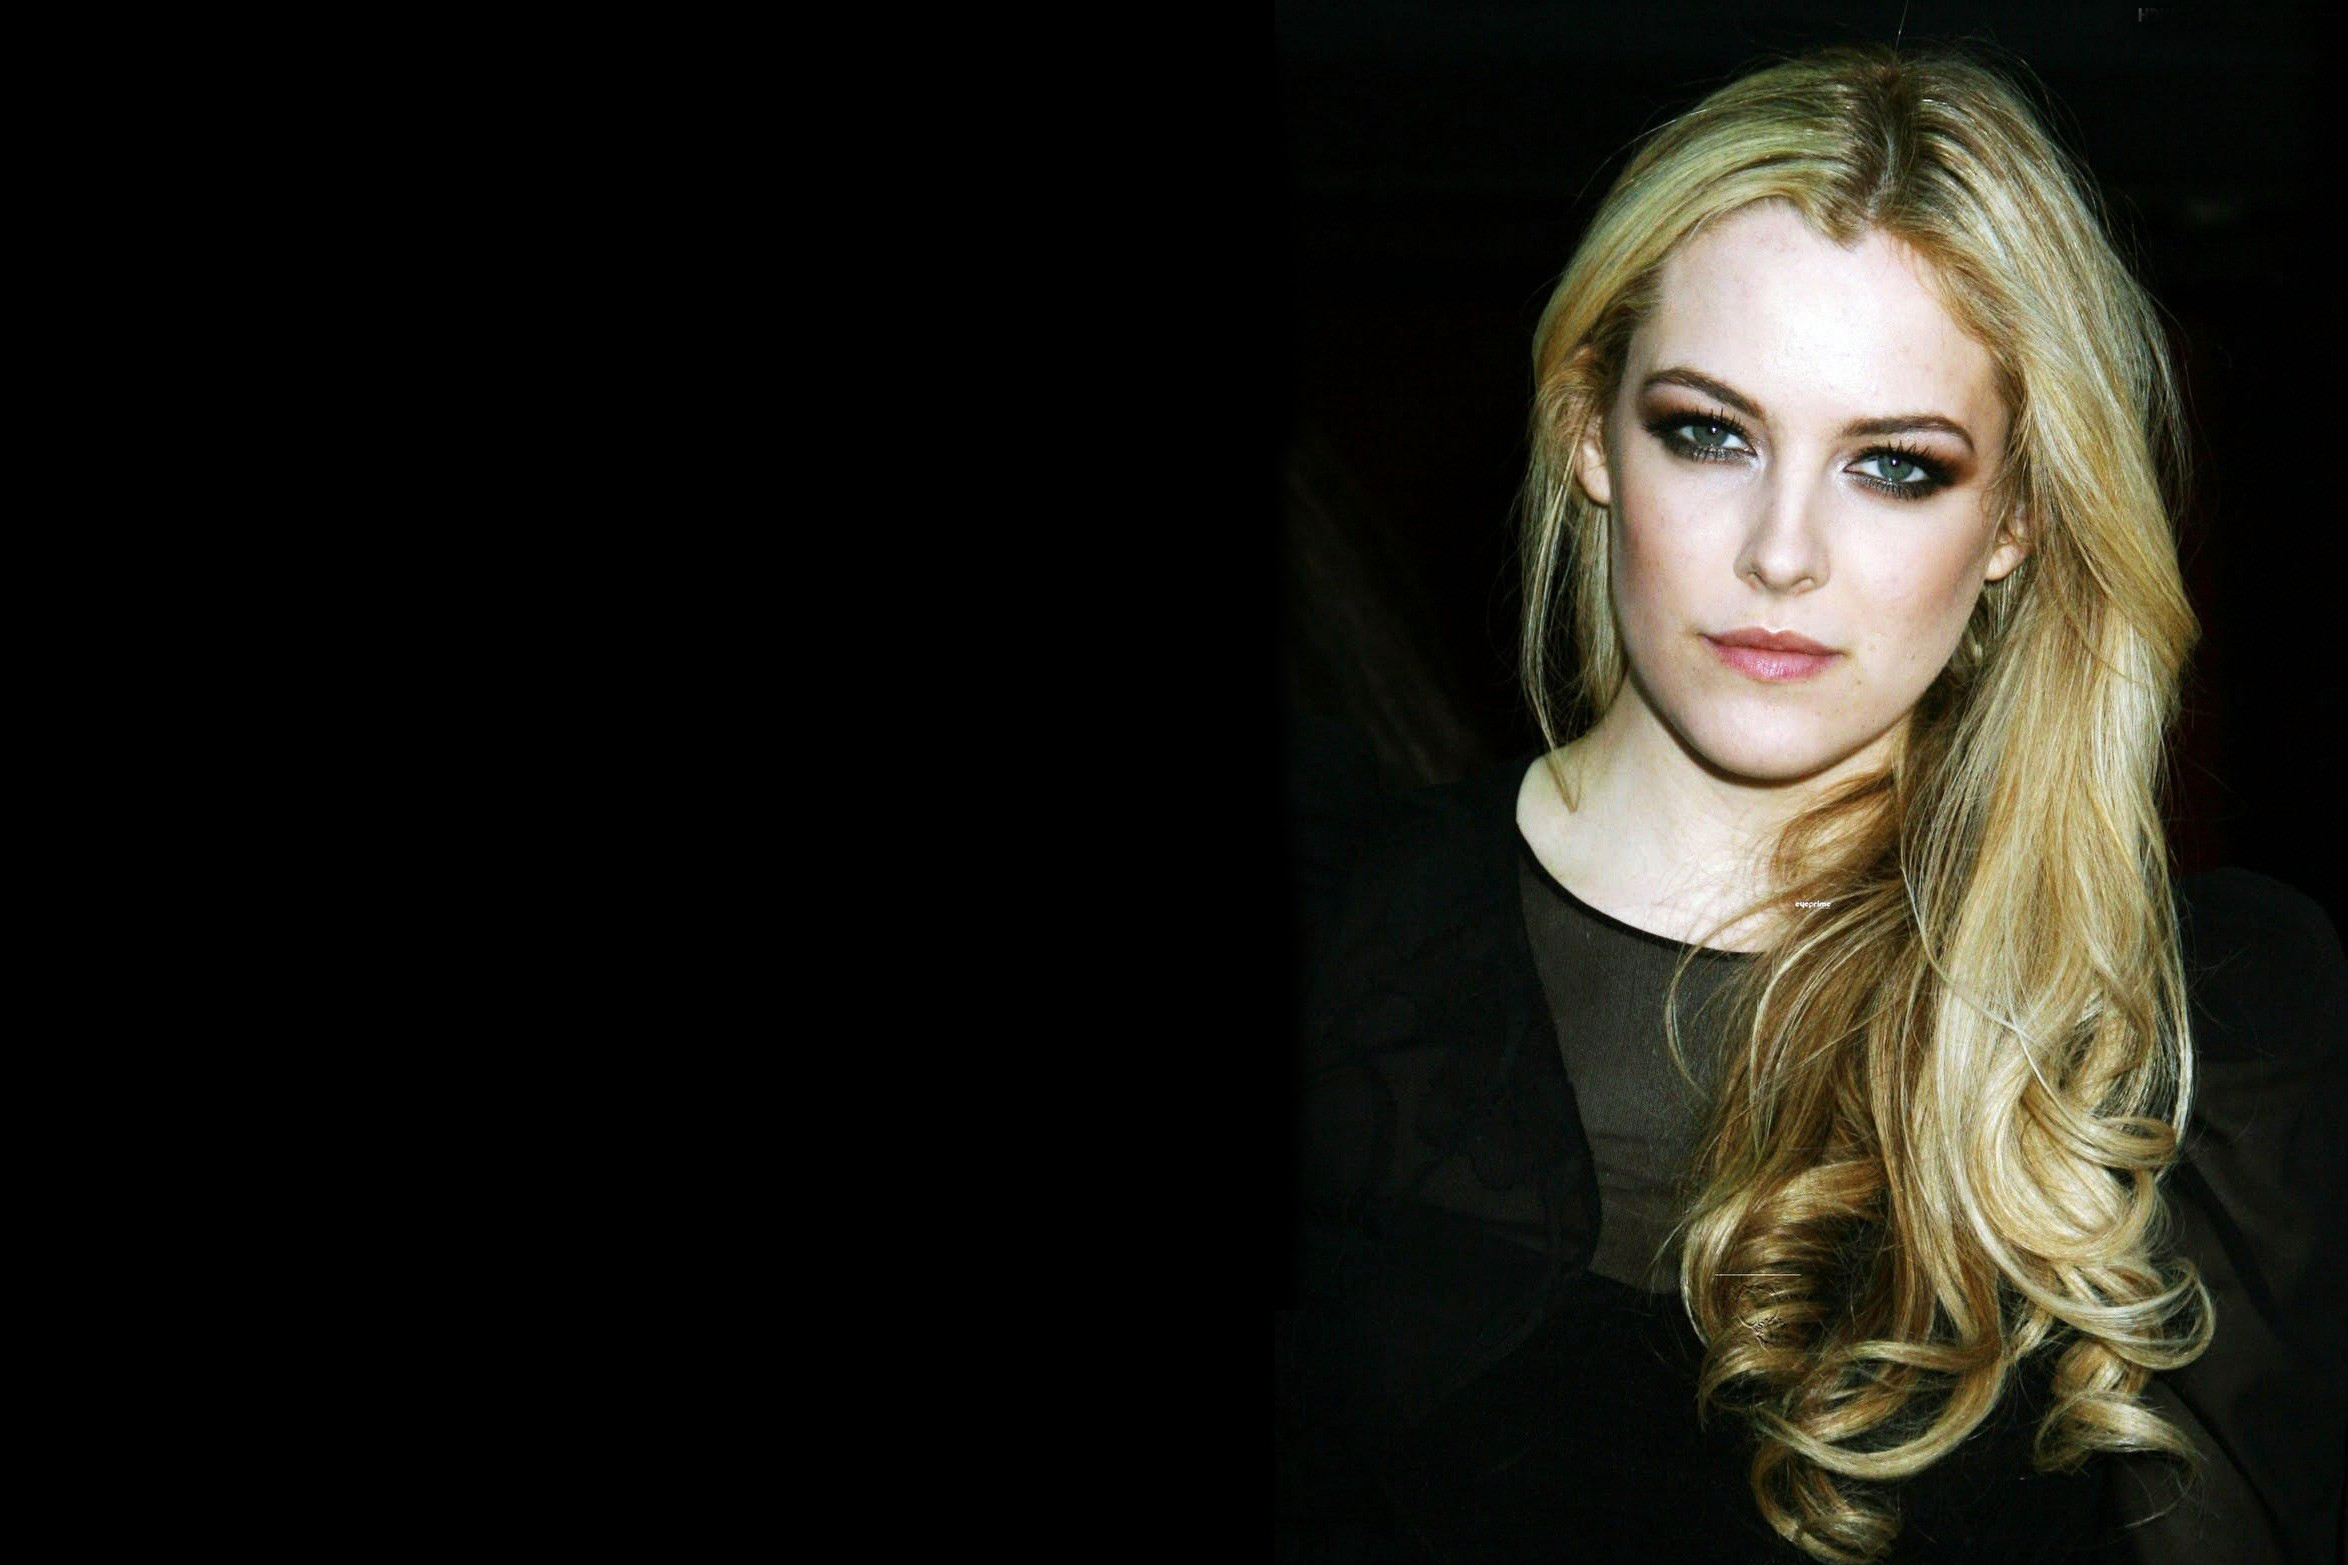 riley keough wide wallpaper 55767